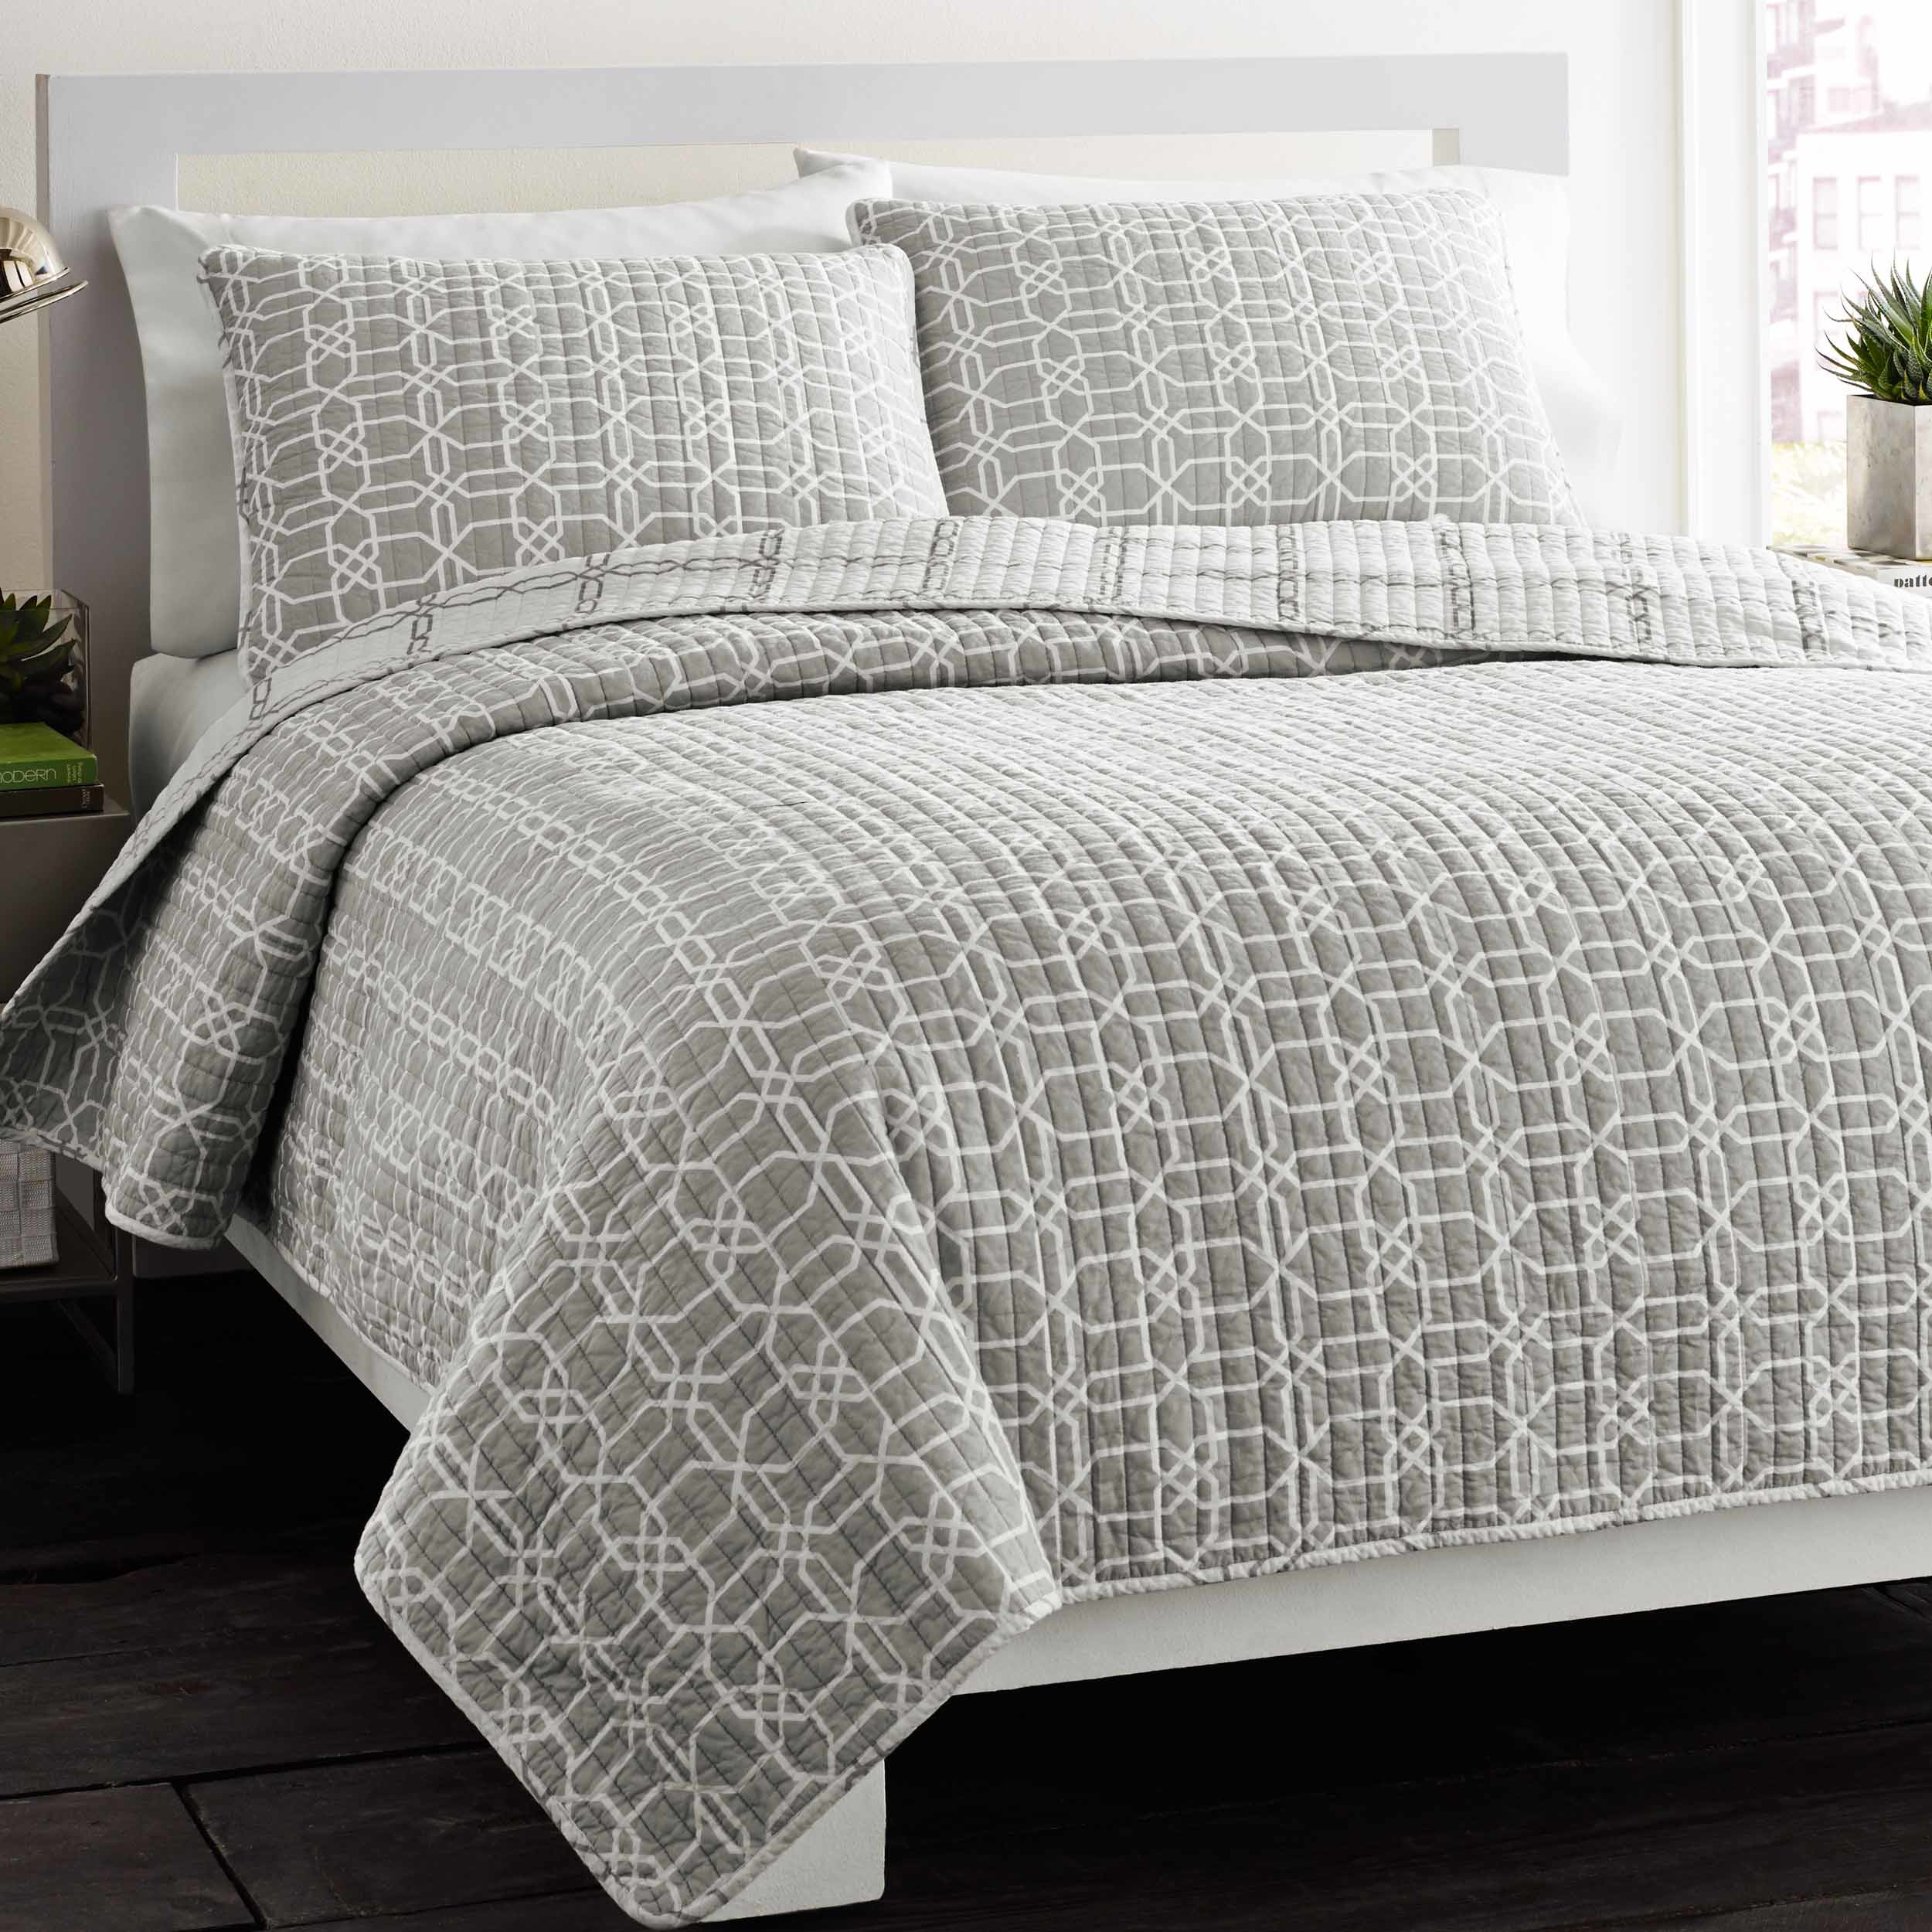 Bedroom: Sears Comforter Sets For Stylish And Cozy Bedroom Ideas ... : quilts for bedspreads - Adamdwight.com